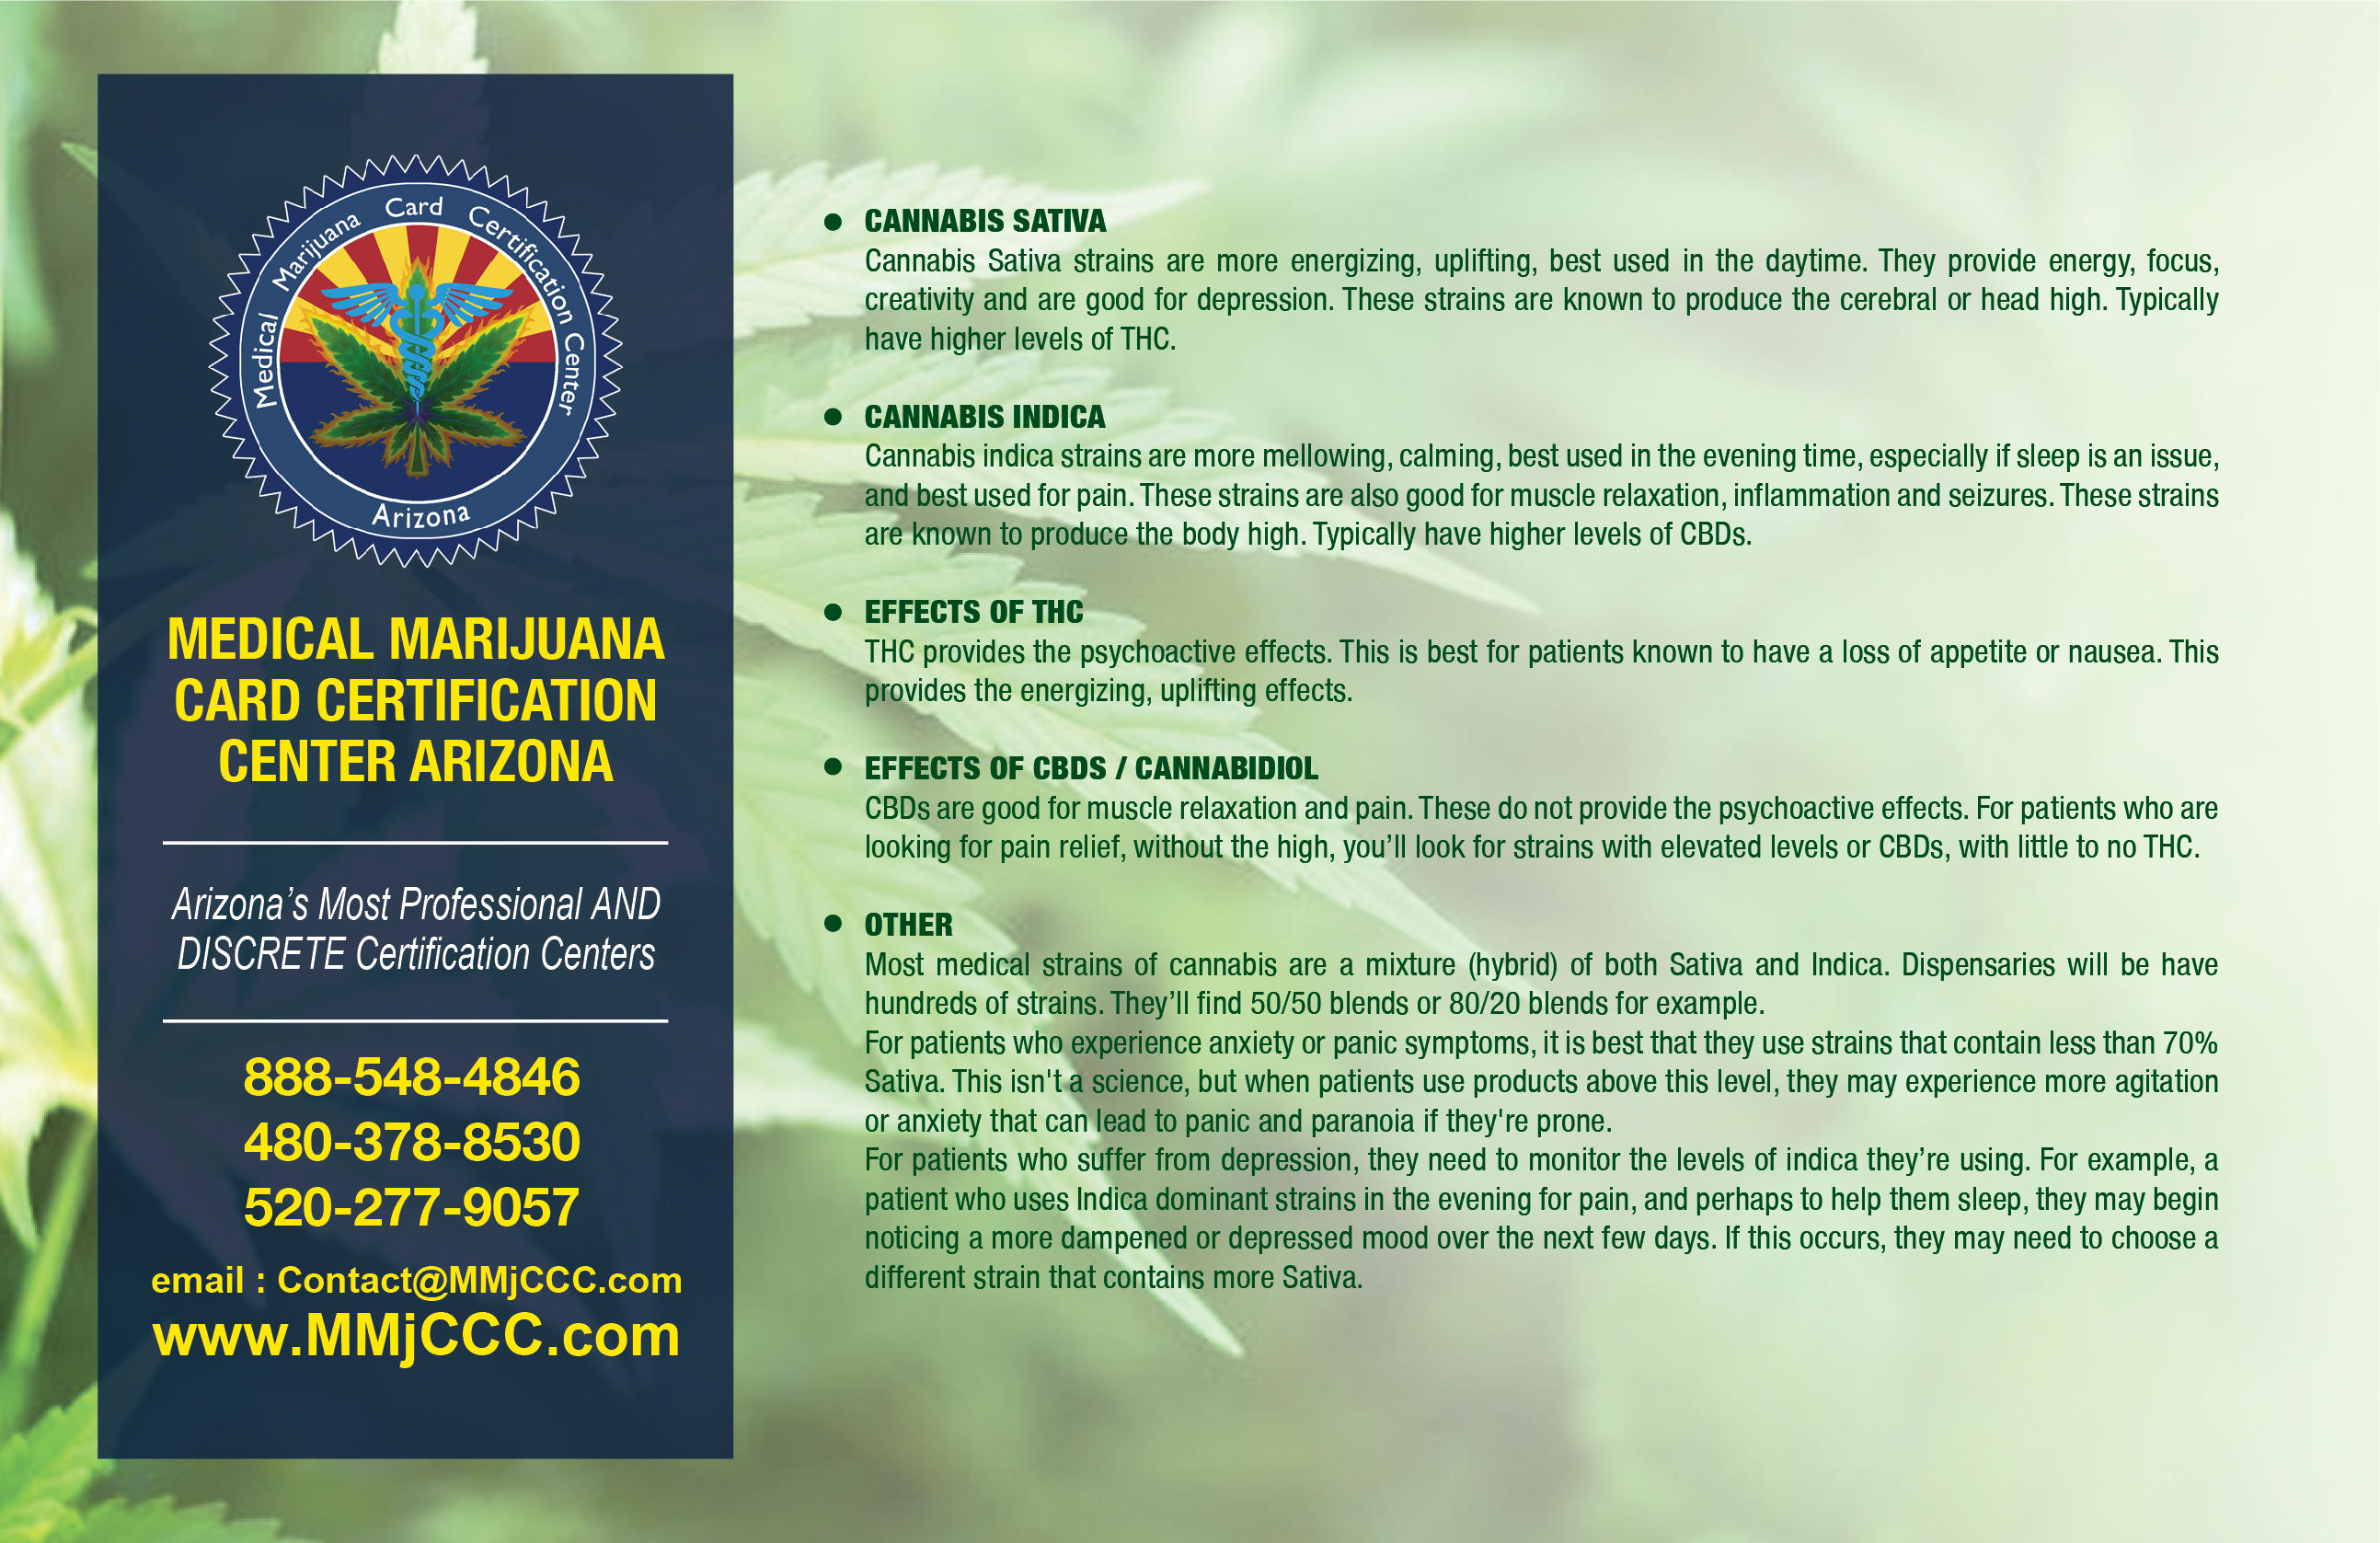 Medical Marijuana Card North Scottsdale